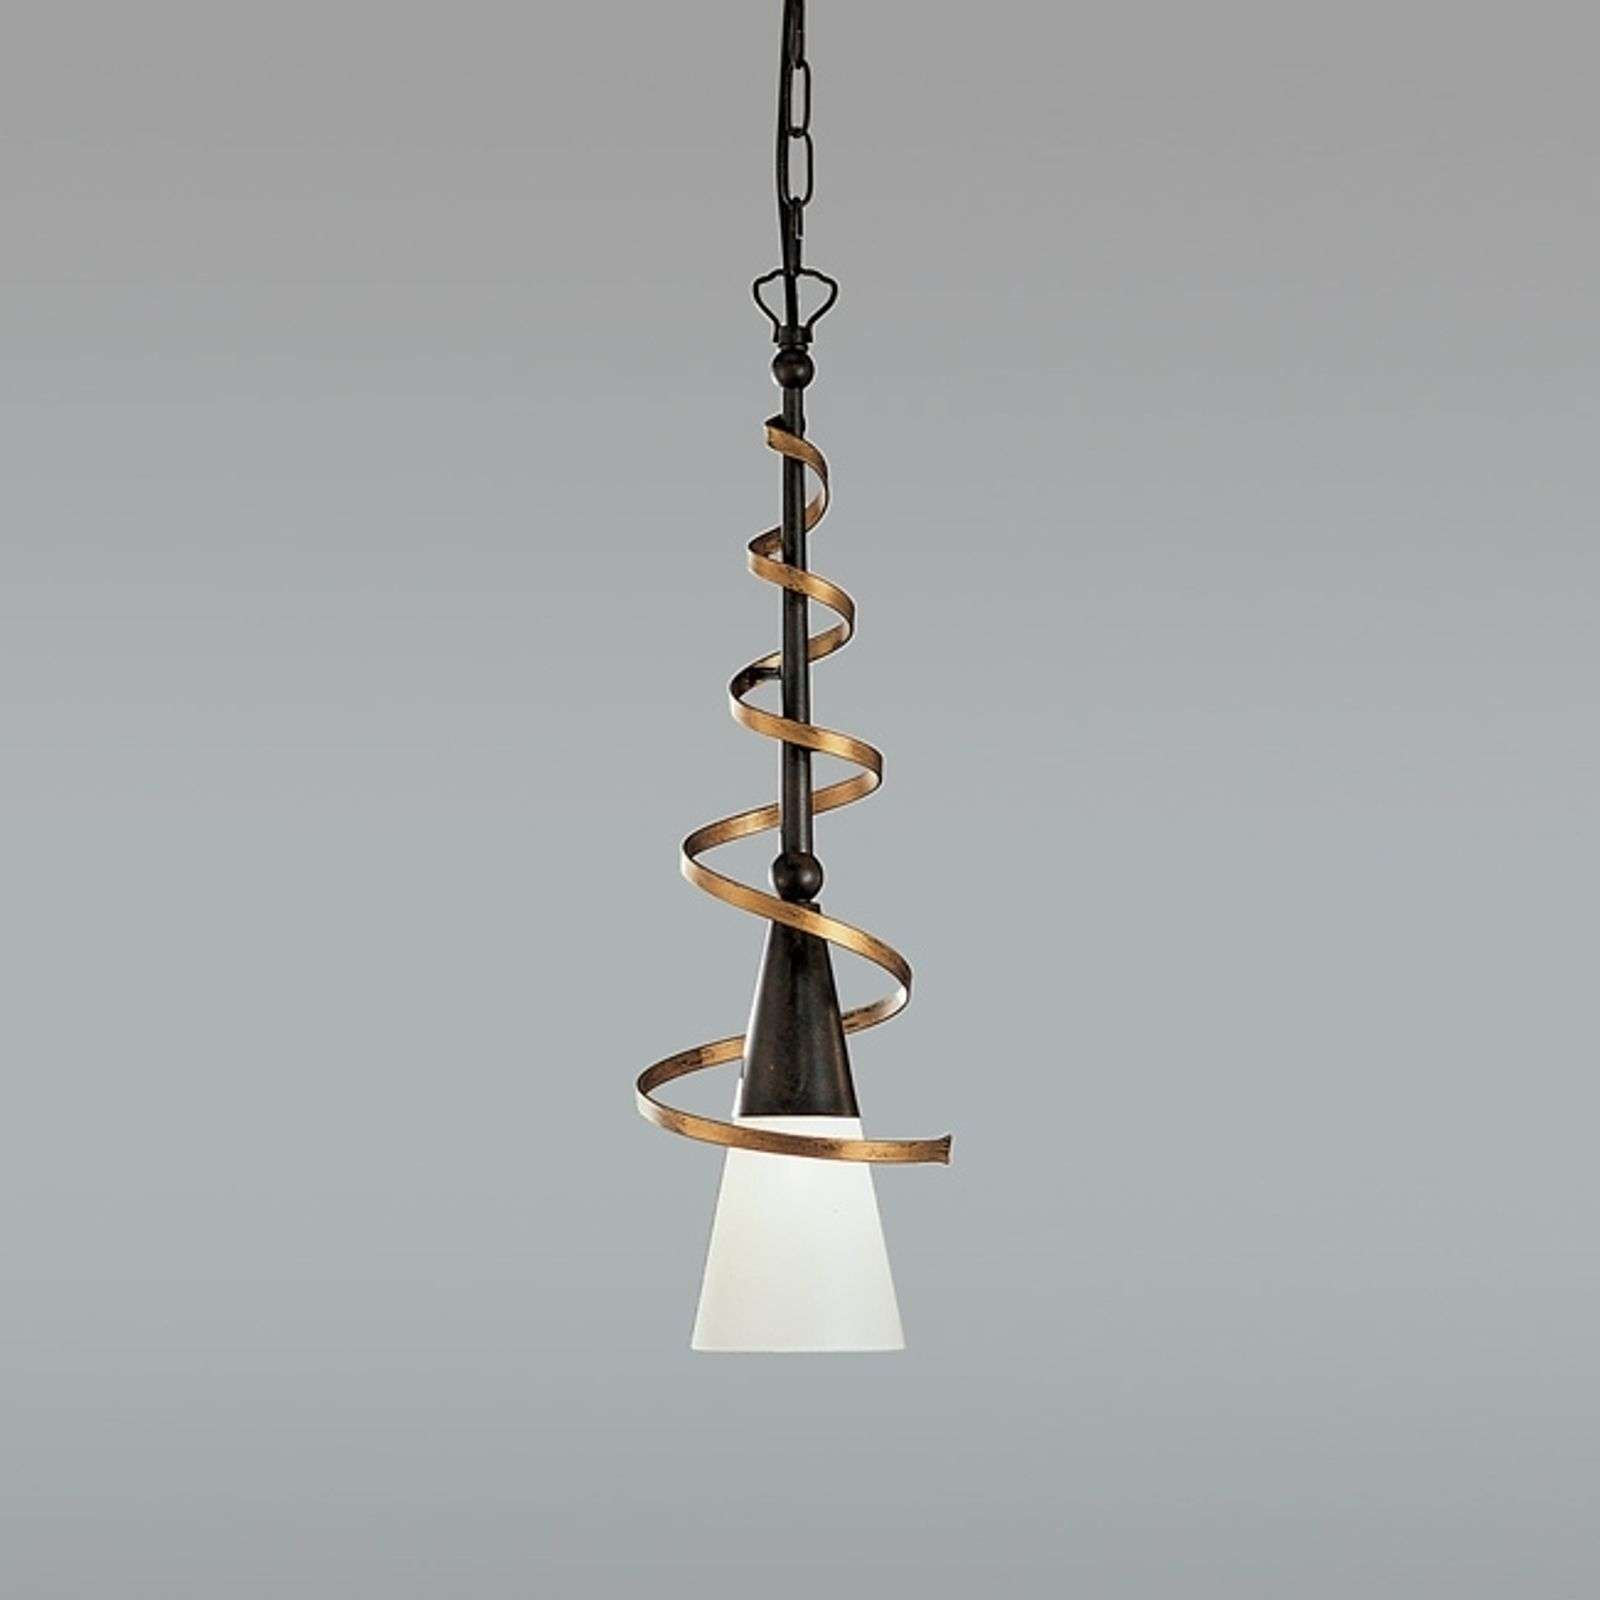 Suspension BONITO rouille antique 50 cm